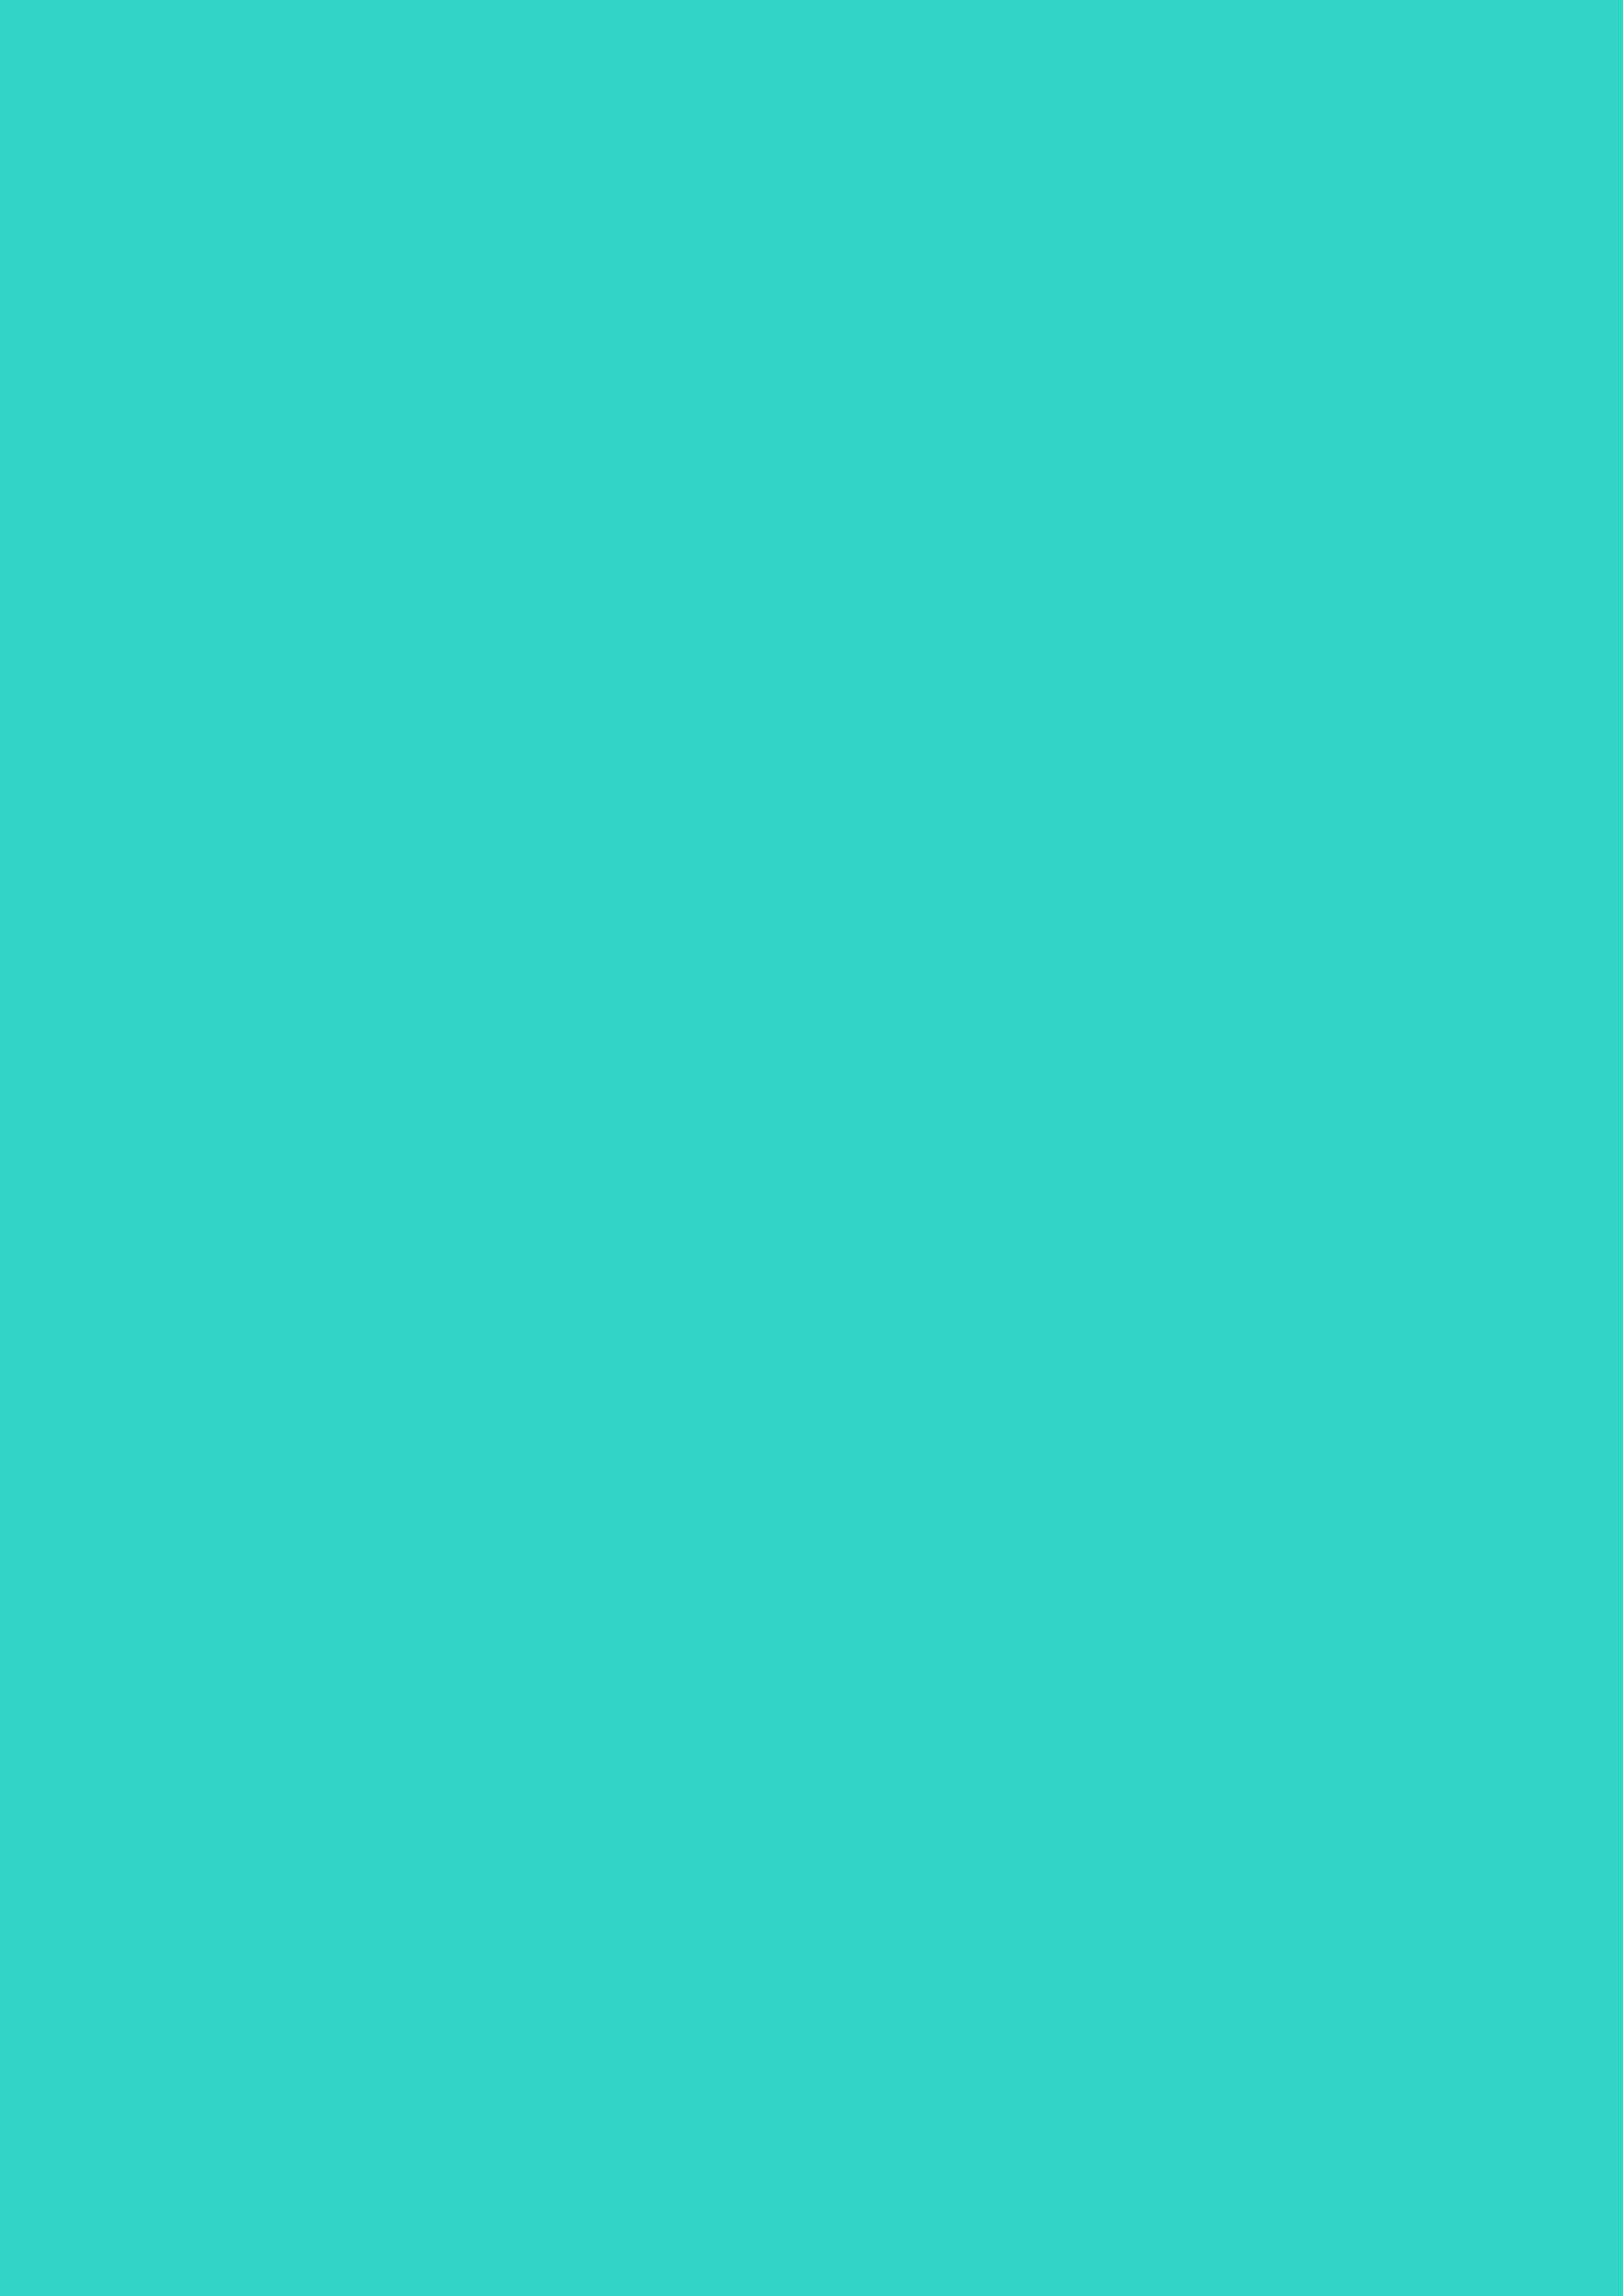 2480x3508 Turquoise Solid Color Background